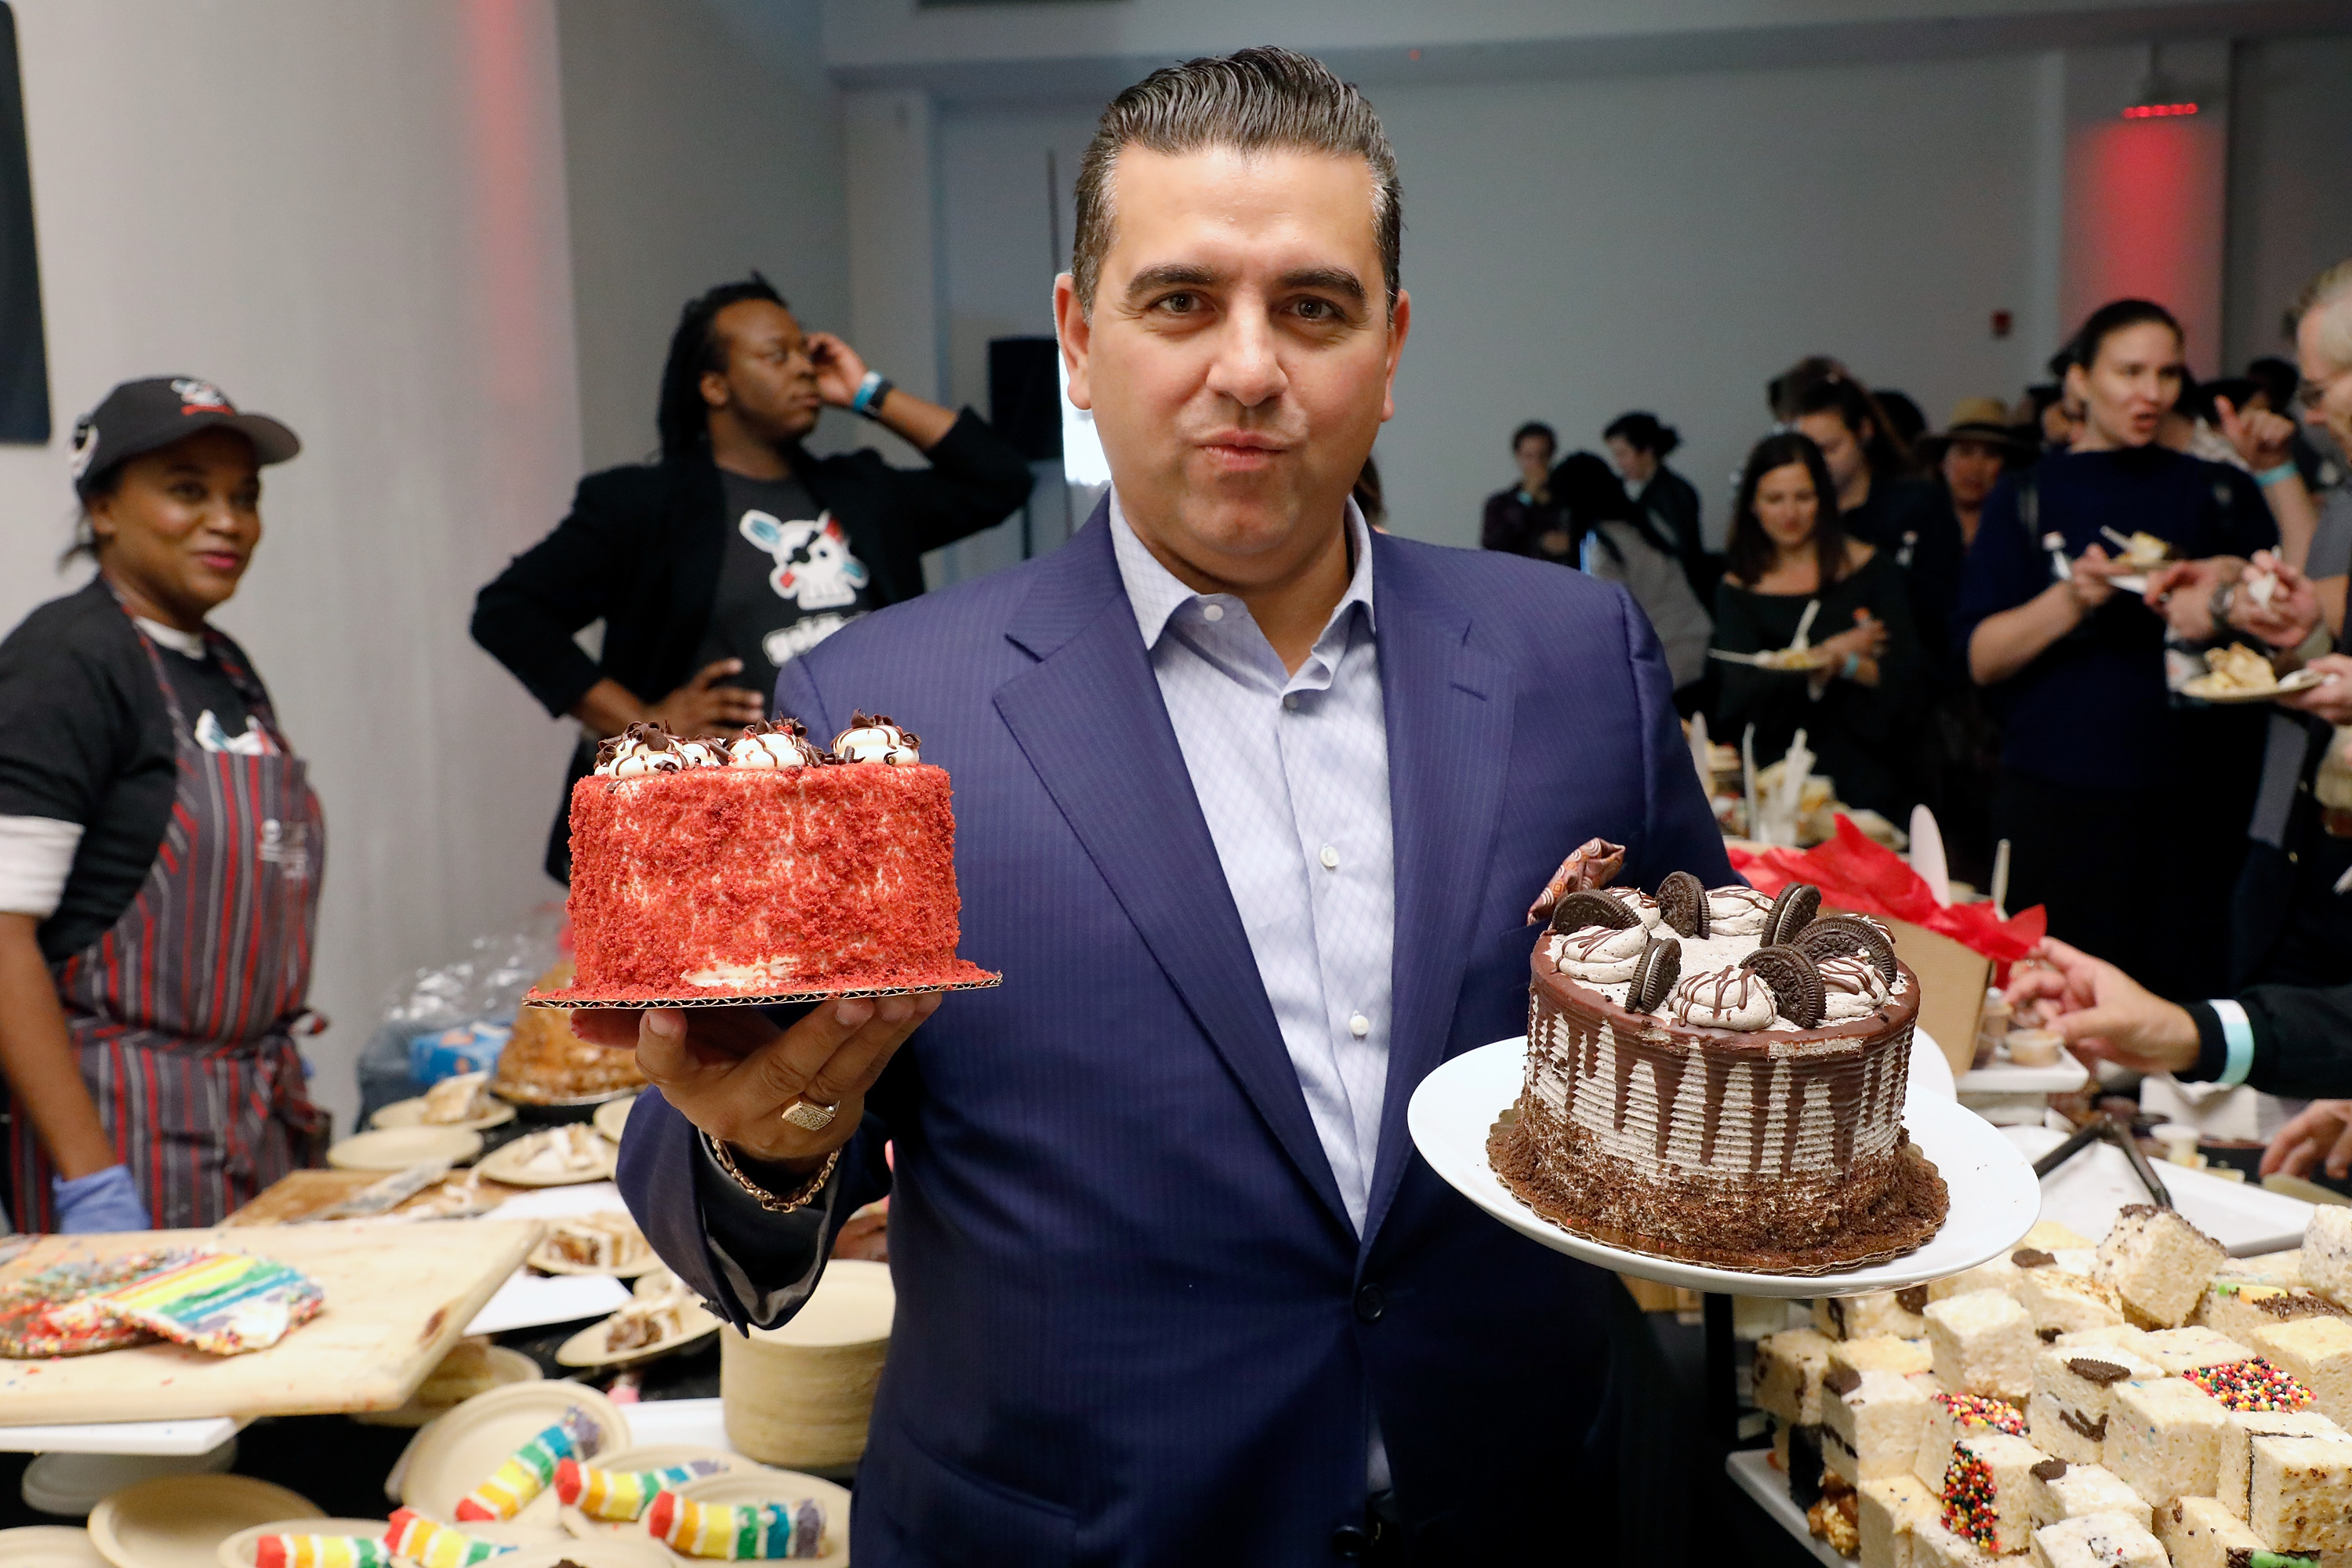 Cake Boss' Buddy Valastro recovering after 'terrible' bowling accident  impales hand - nj.com